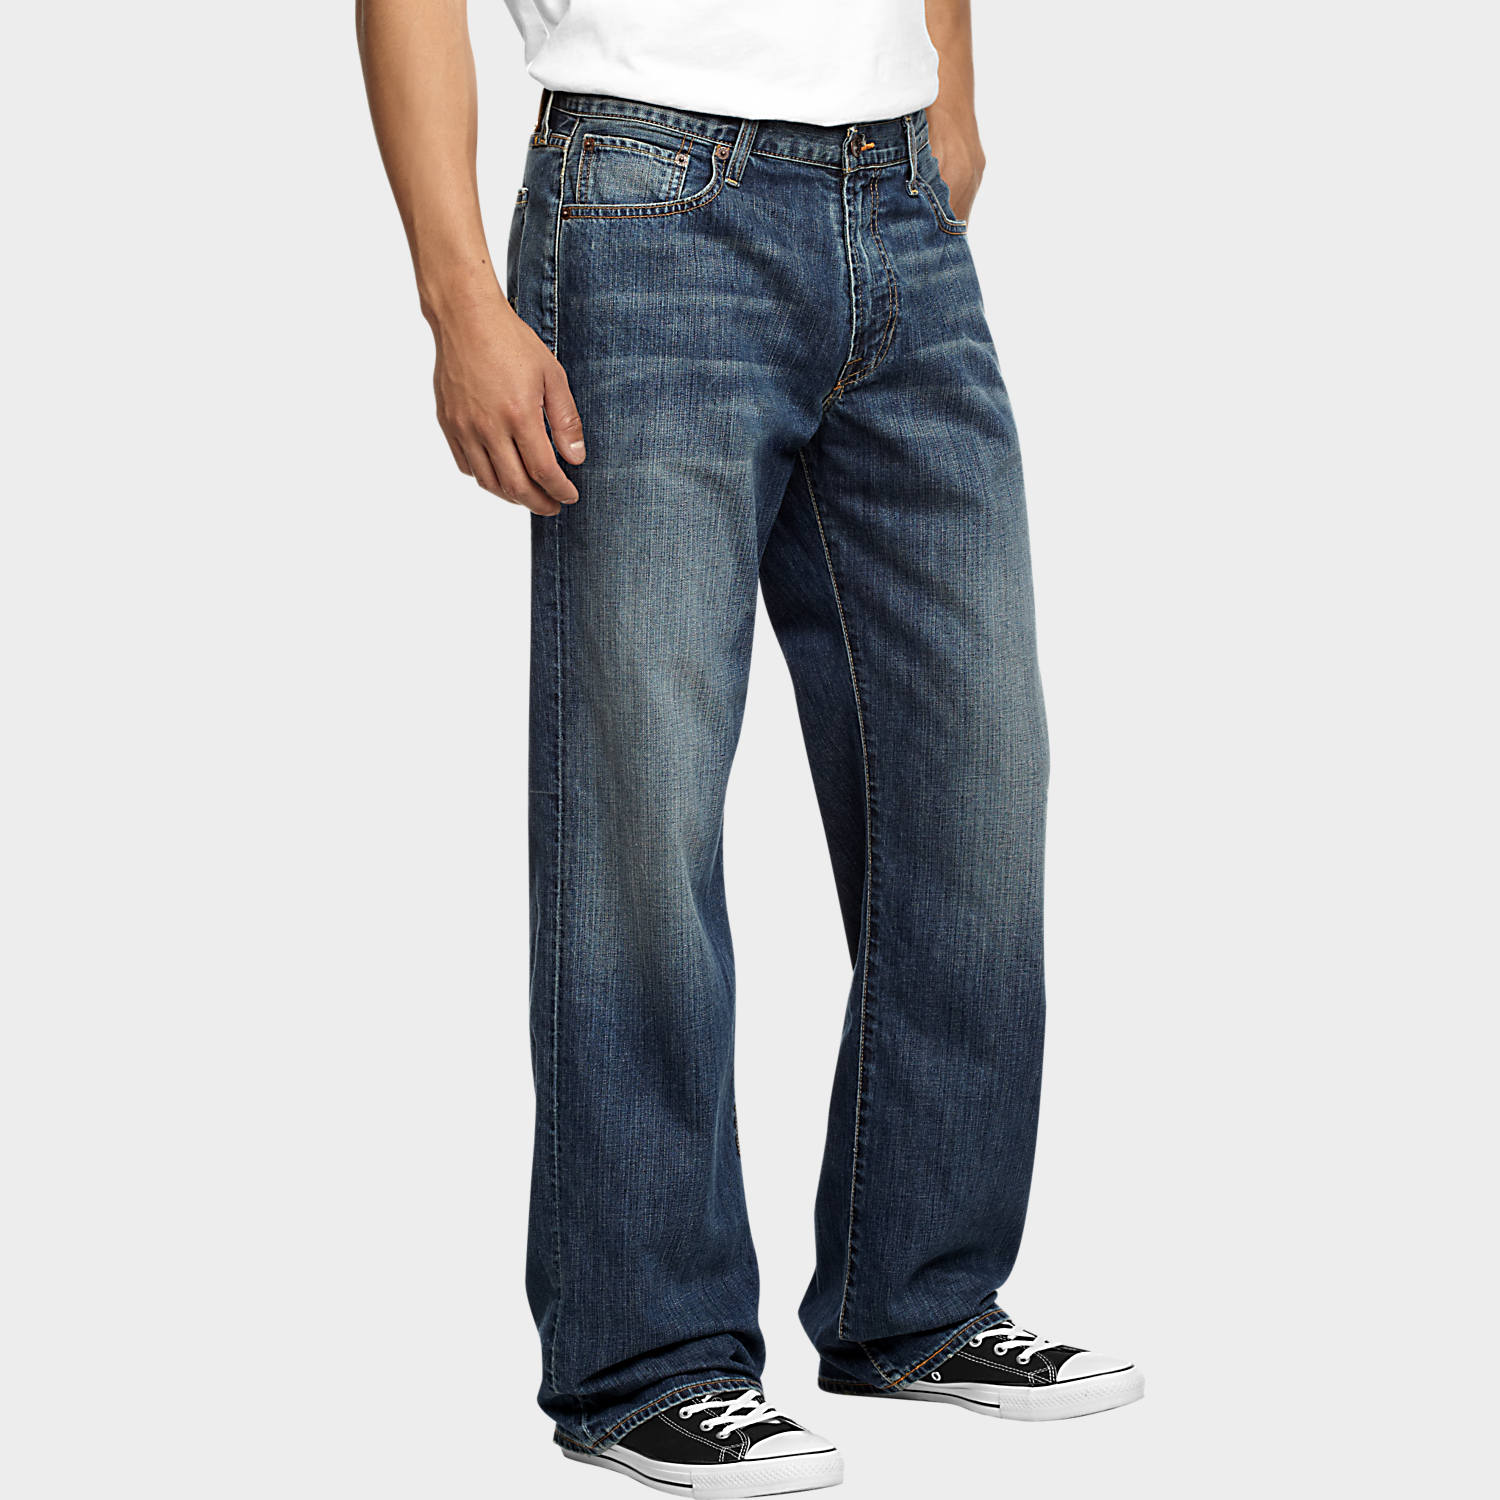 Find great deals on eBay for loose fit mens jeans. Shop with confidence.